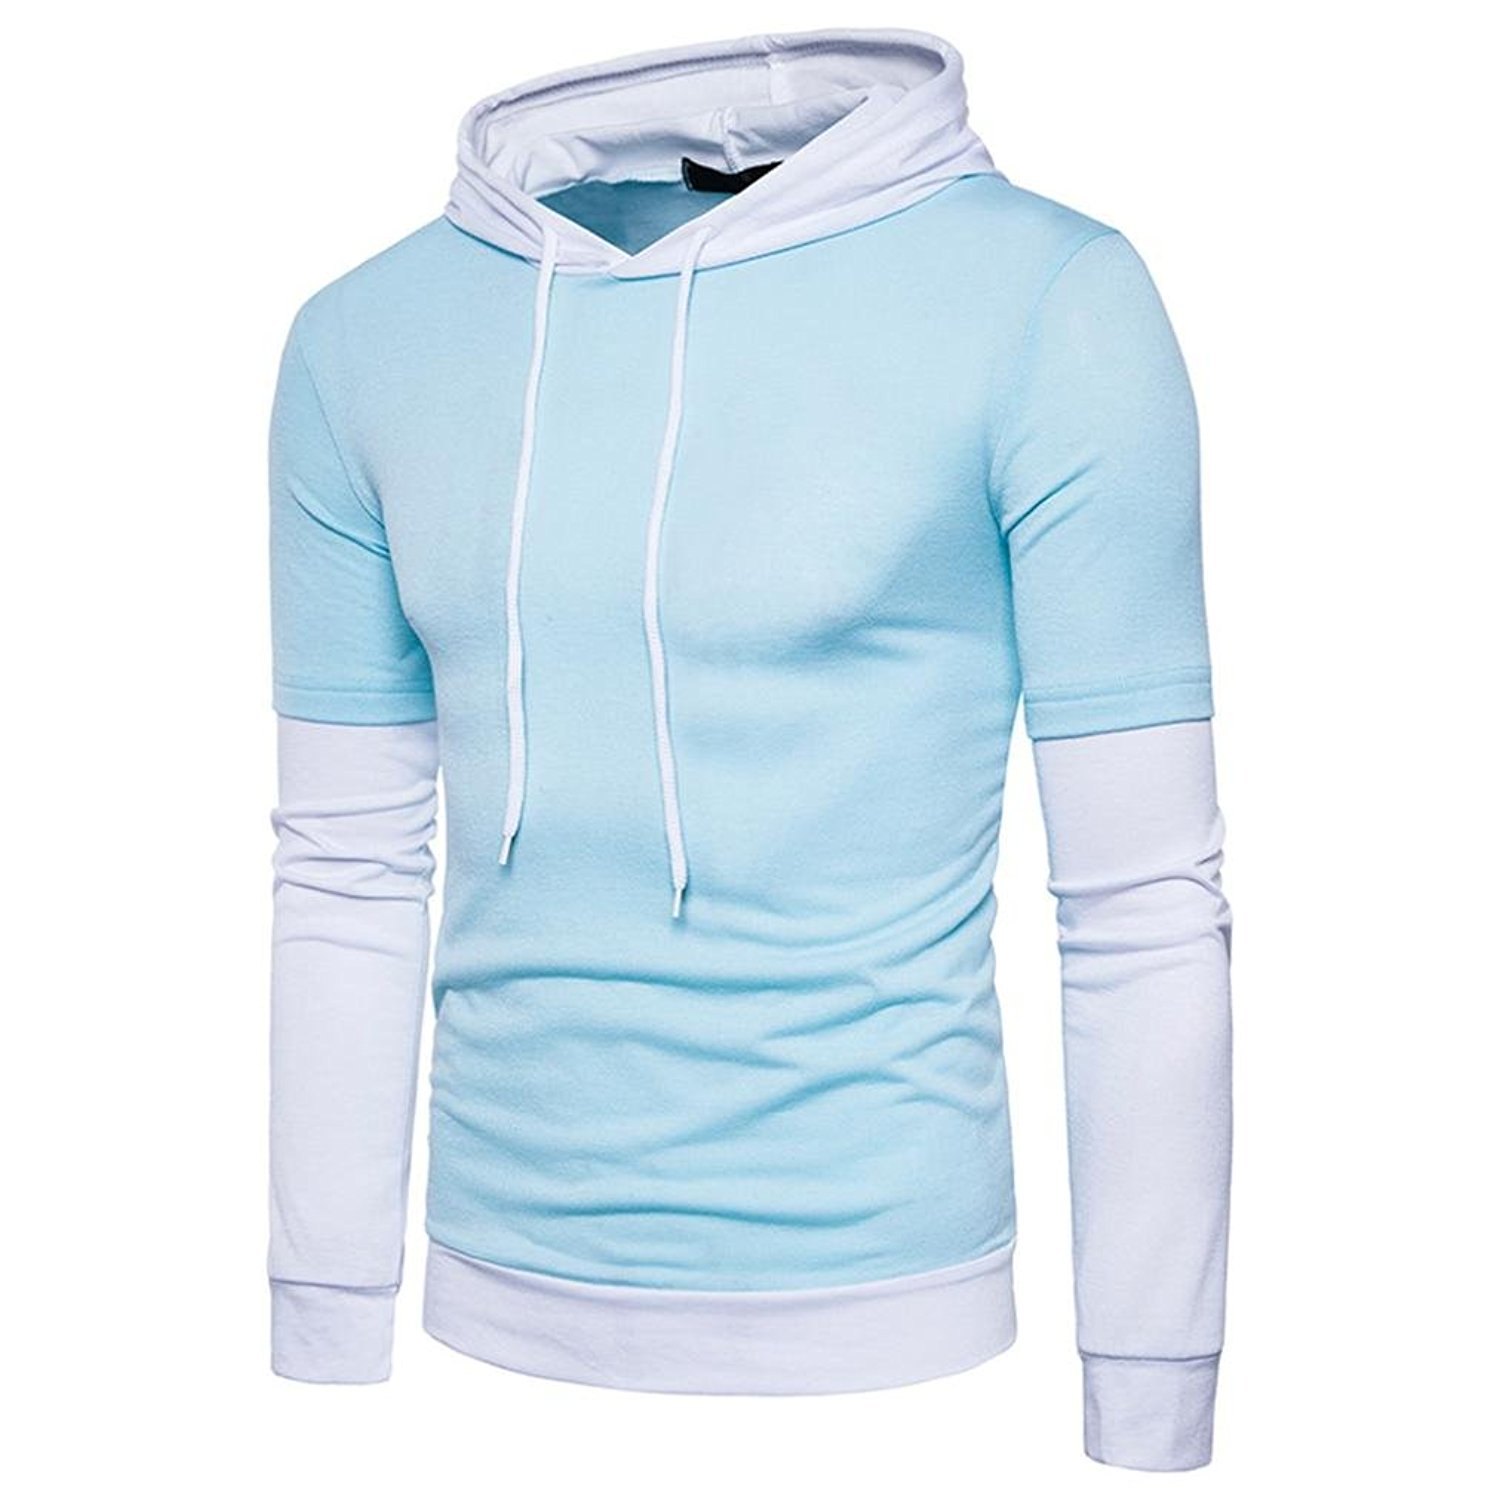 Mens Hoodies,Bokeley Fashion Long Sleeve Solid Patchwork Hooded Sweatshirt Pullover Top Coat